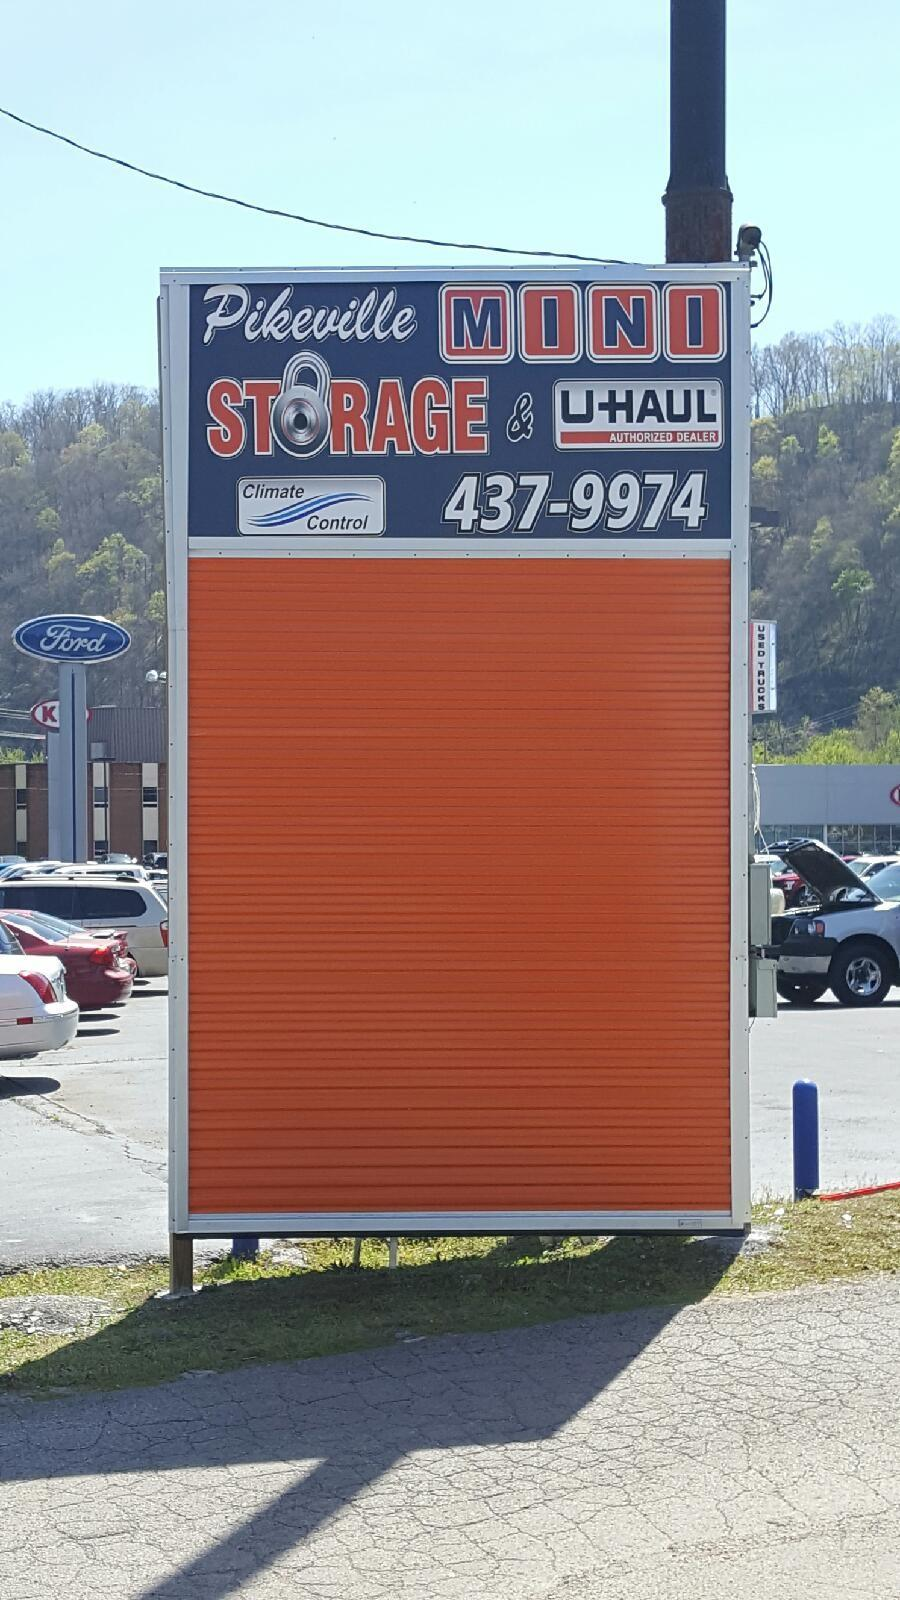 Superb Pikeville Mini Storage